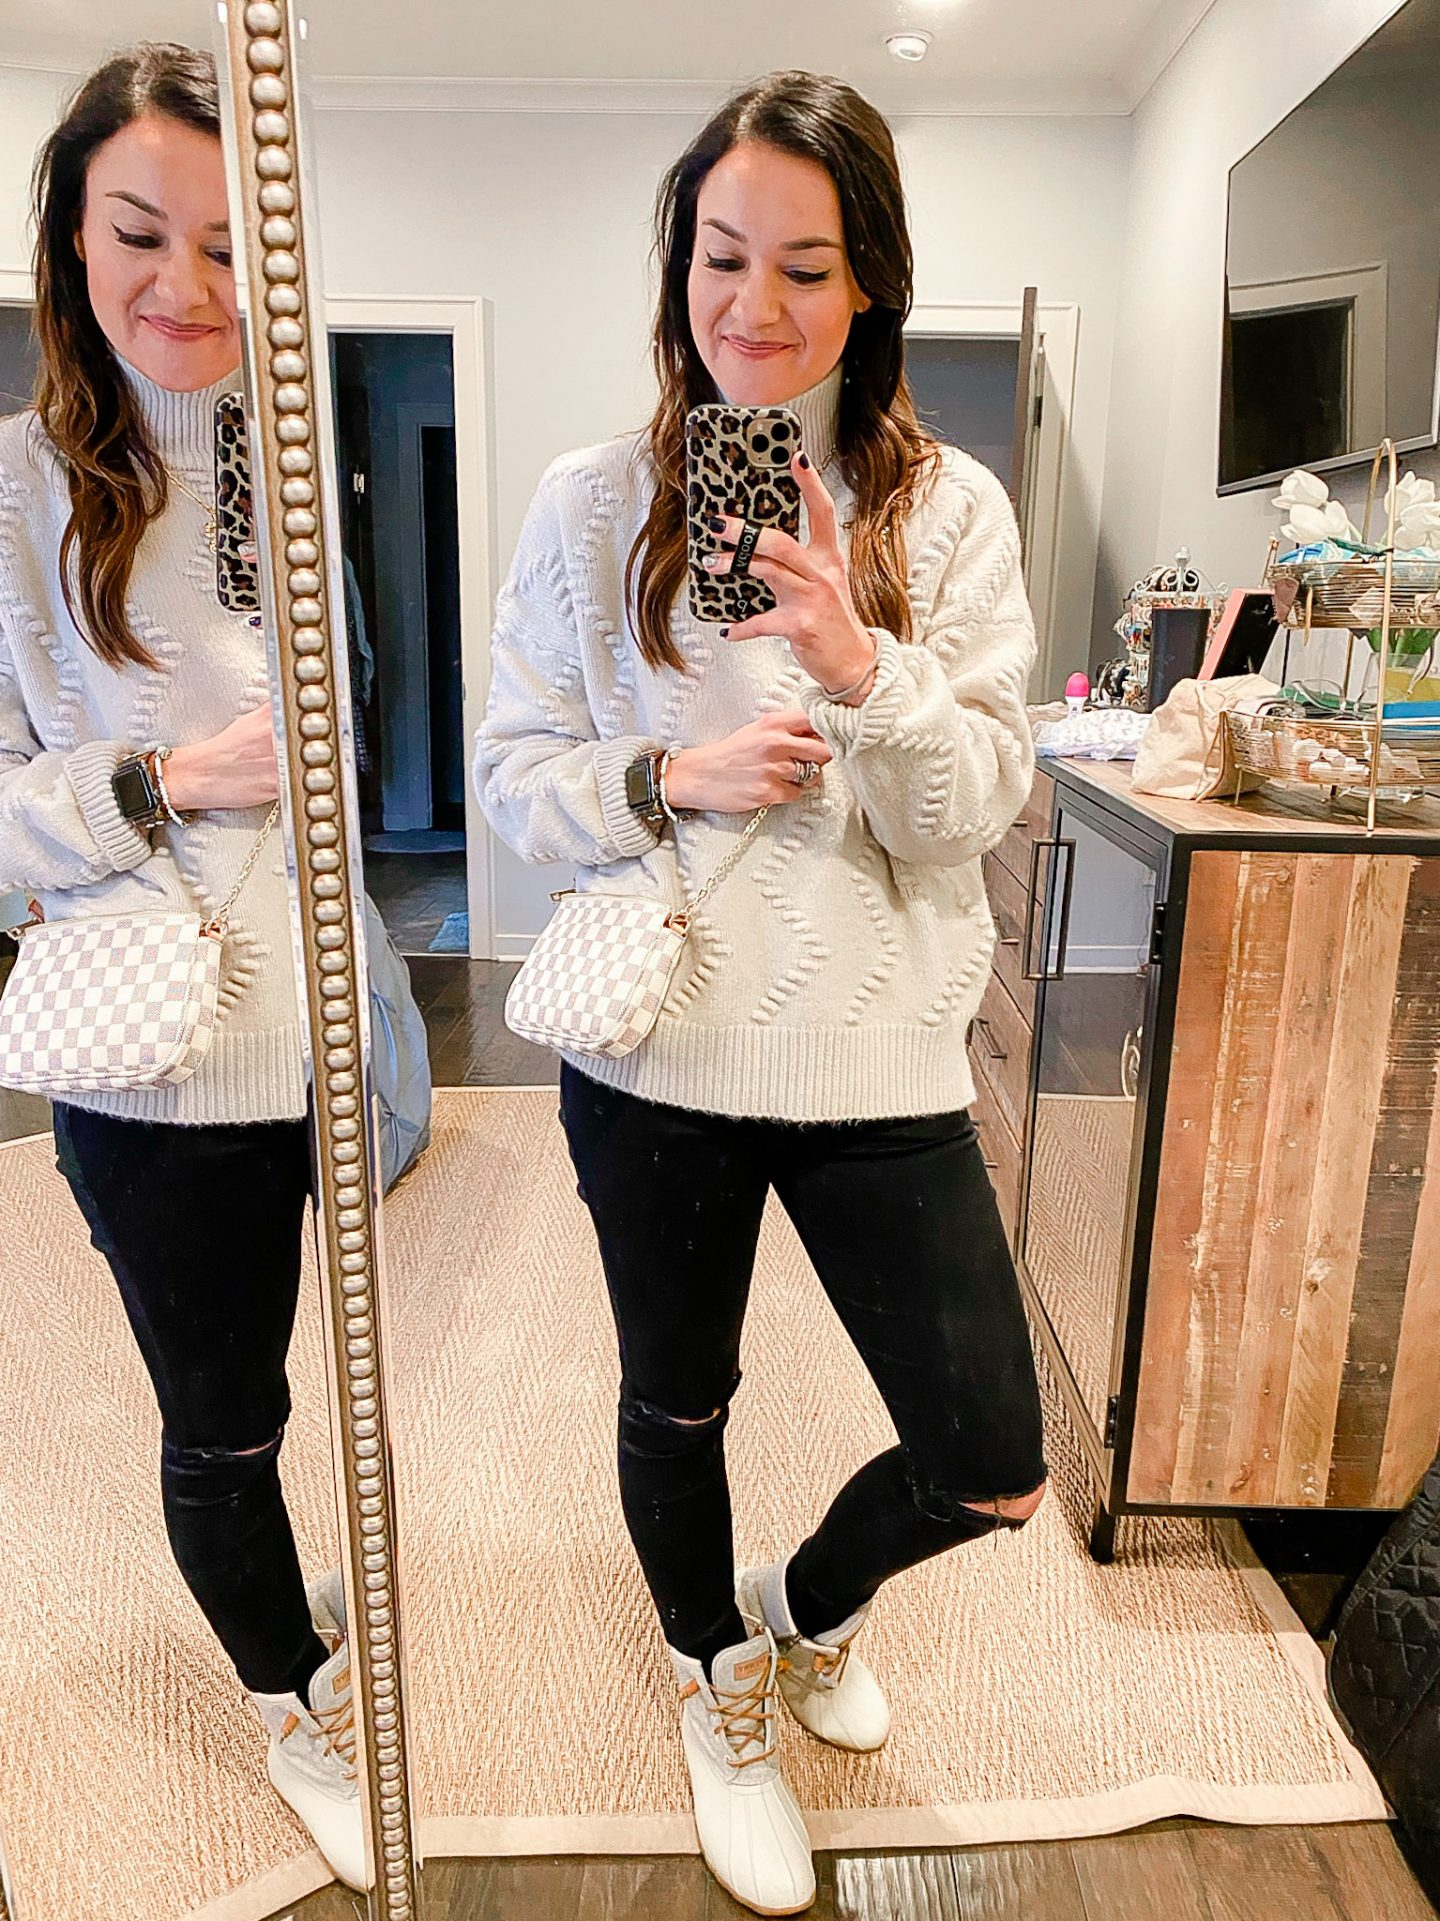 Cream turtleneck sweater outfit